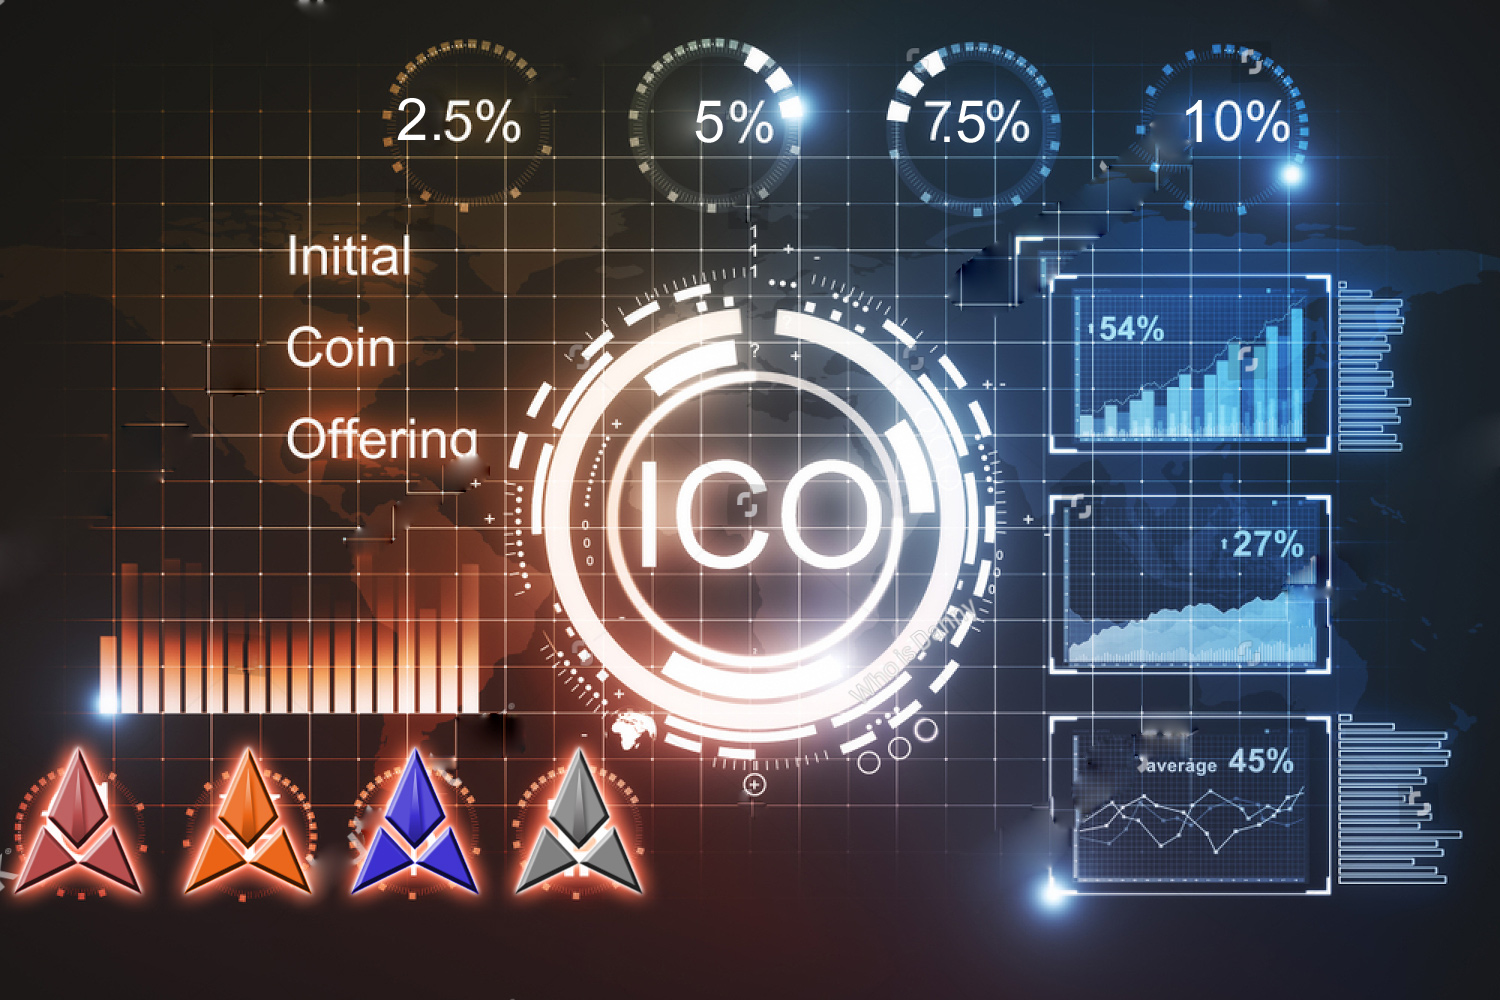 Invest Smartly in ICO: Essential Information You Need to Know before Investing in any ICO